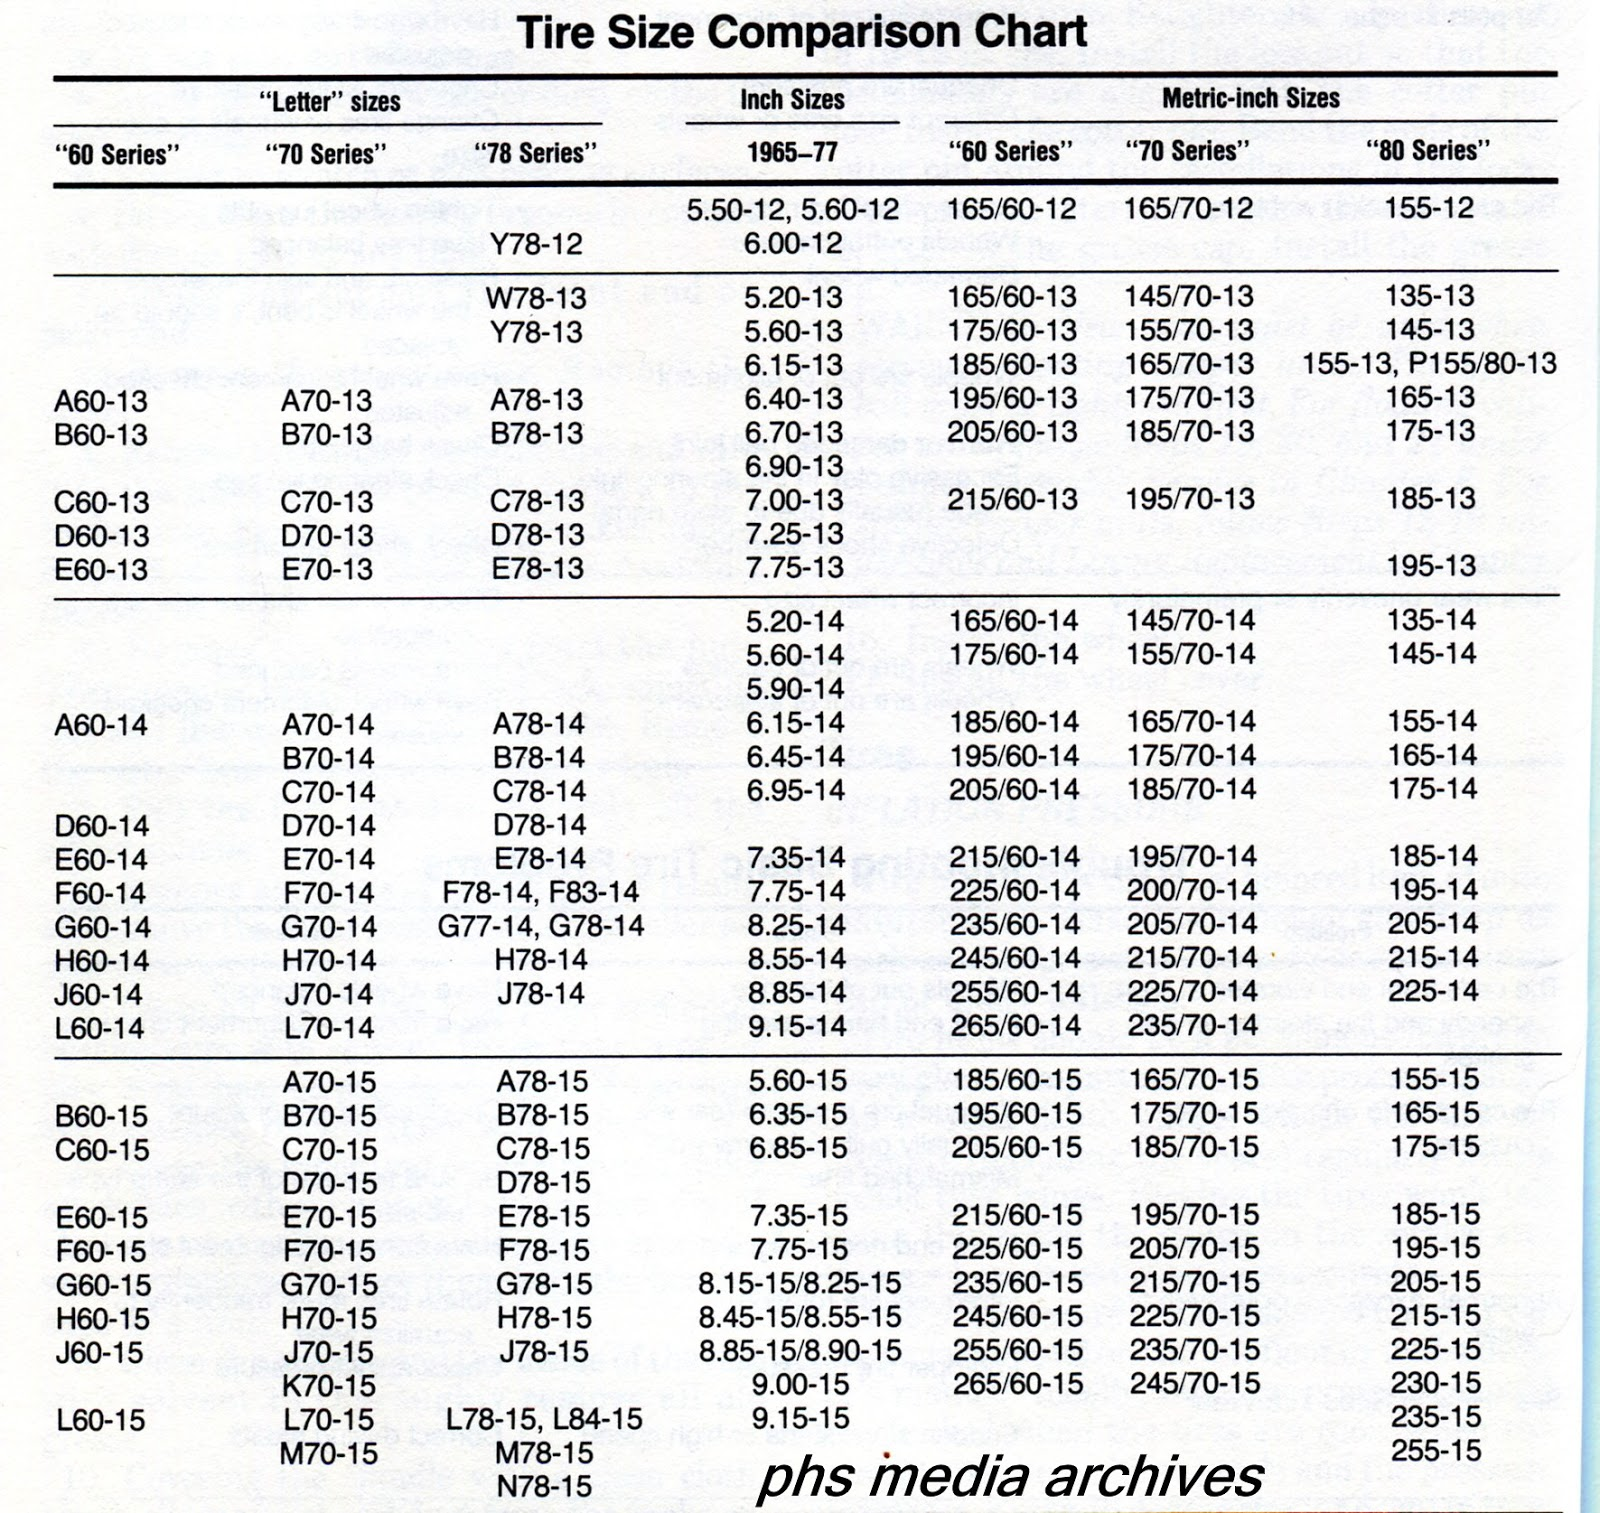 Tech files series auto tire conversion chart rim sizes and tire size comparison chart shows conversion from letter inch size amd metric inch sizes to enlarge chart right click on image nvjuhfo Choice Image